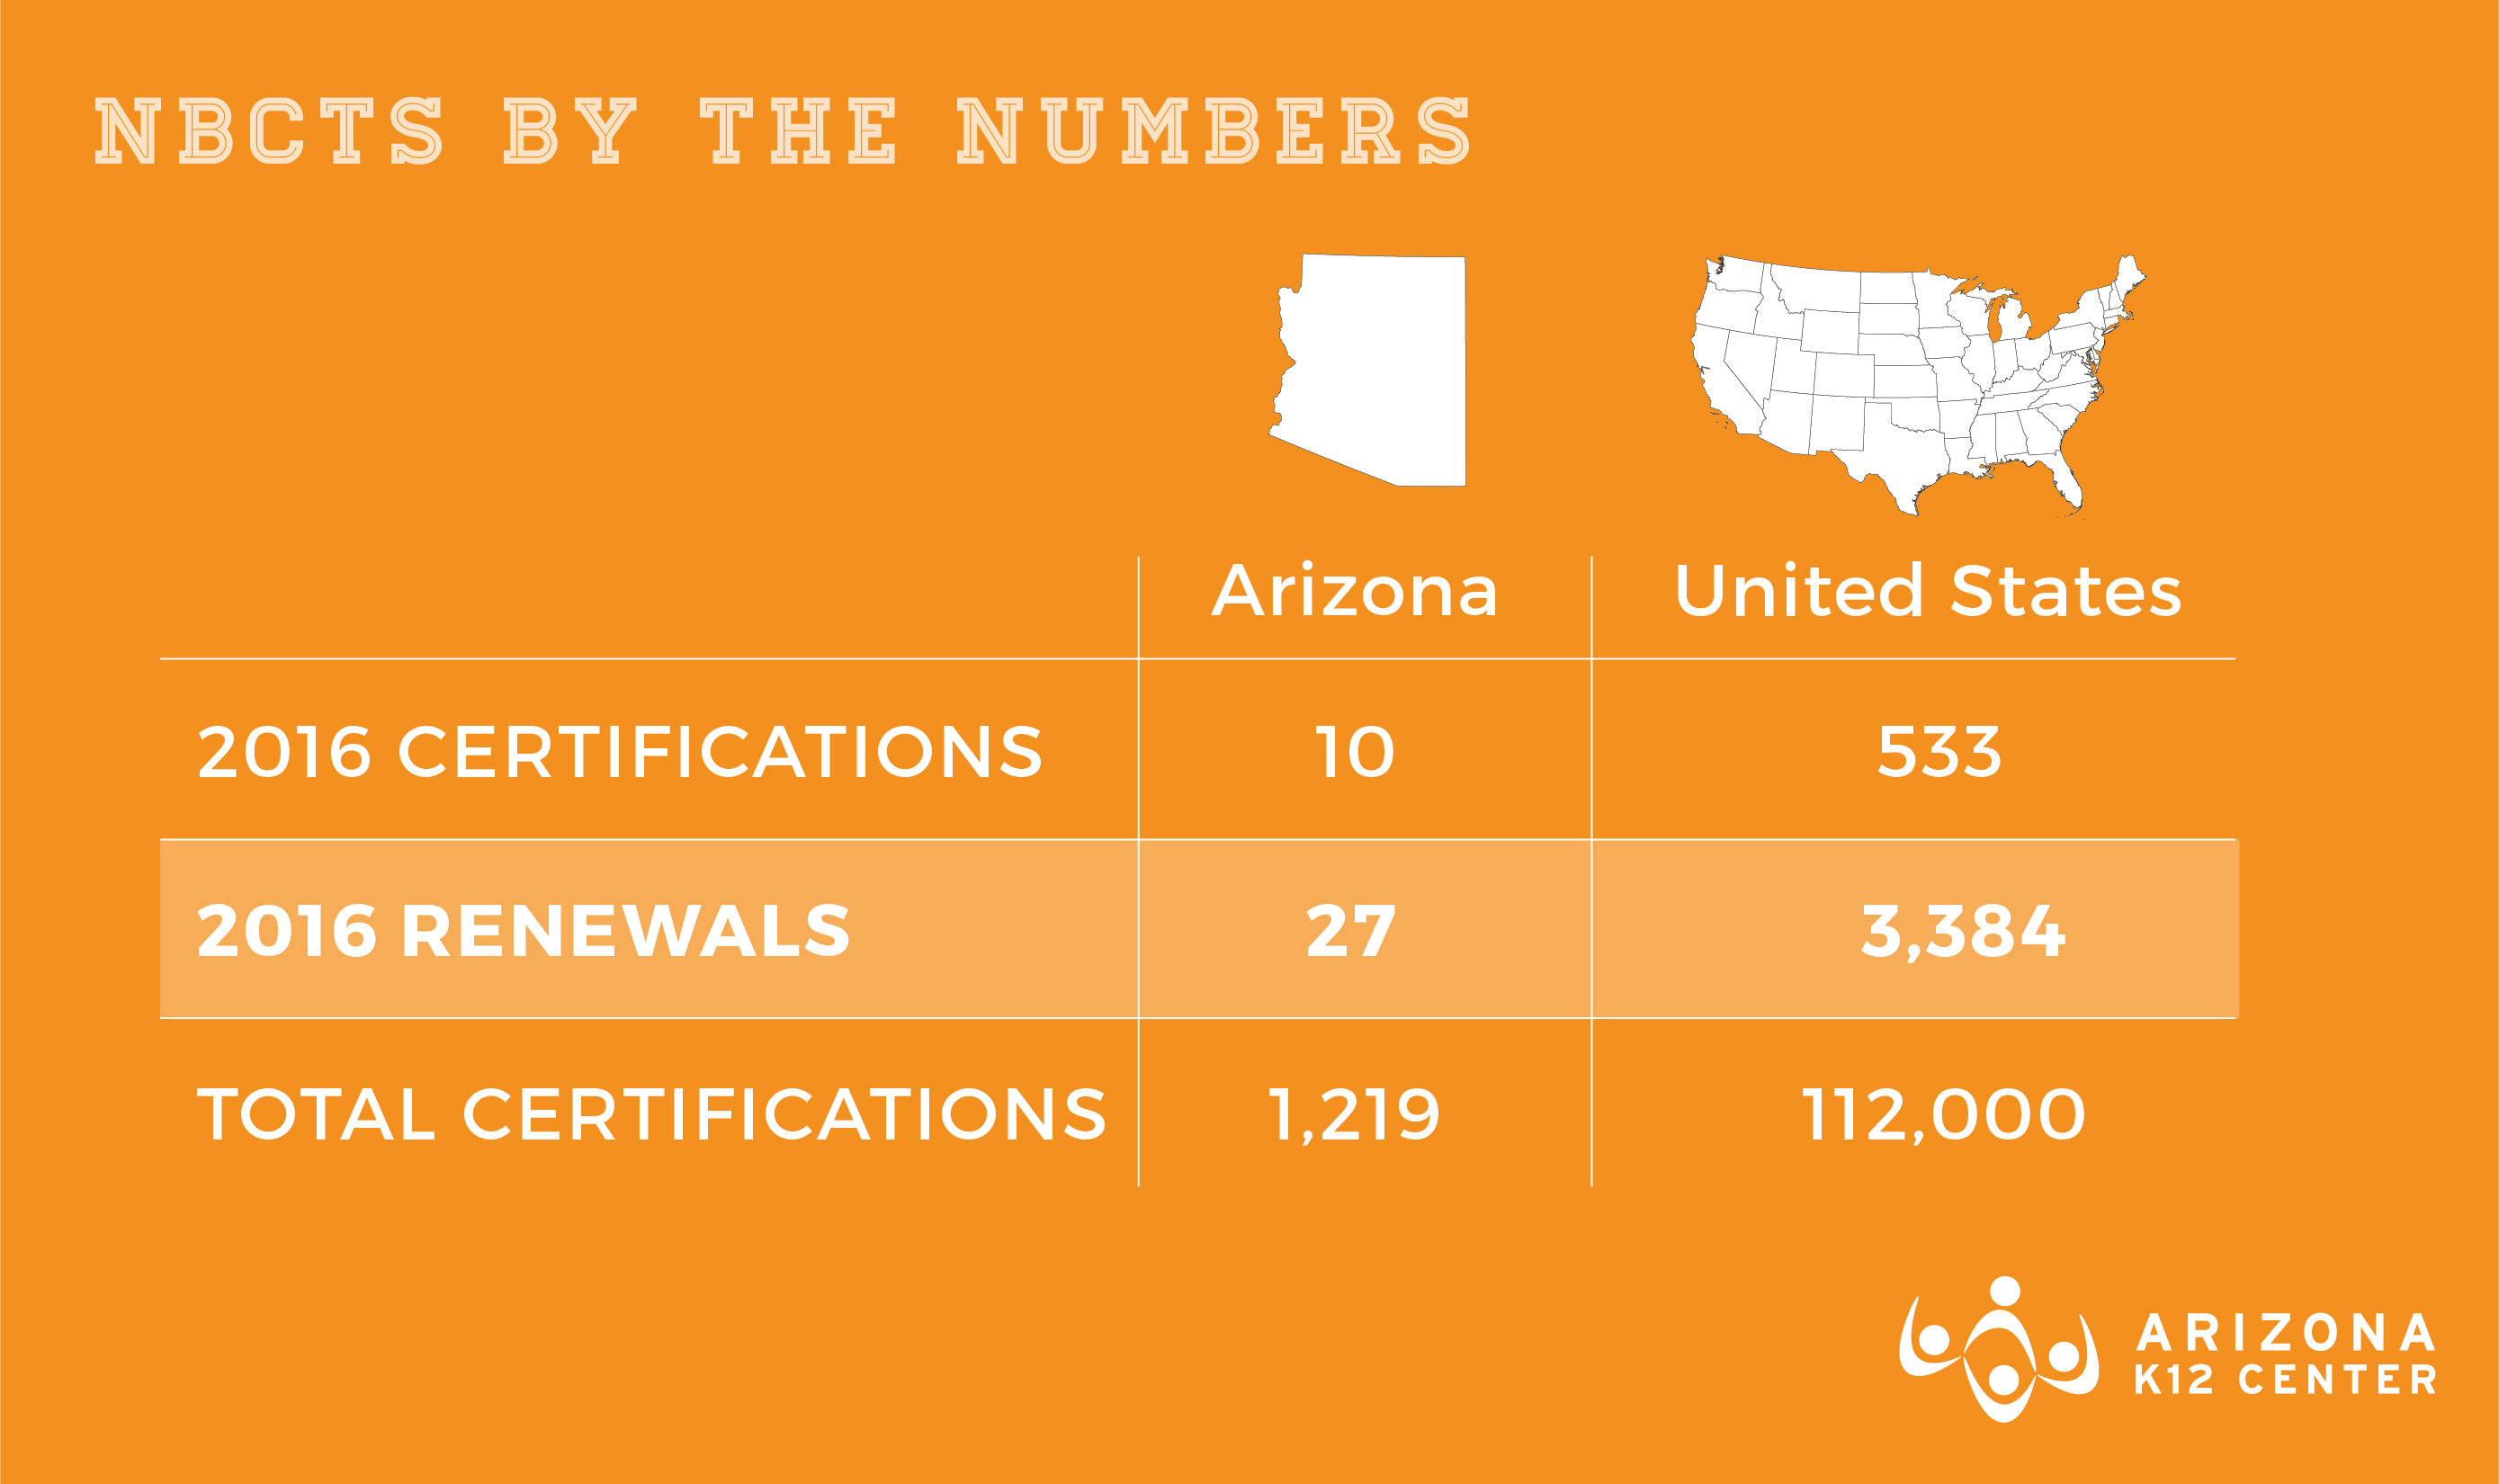 NBCTs by the Numbers